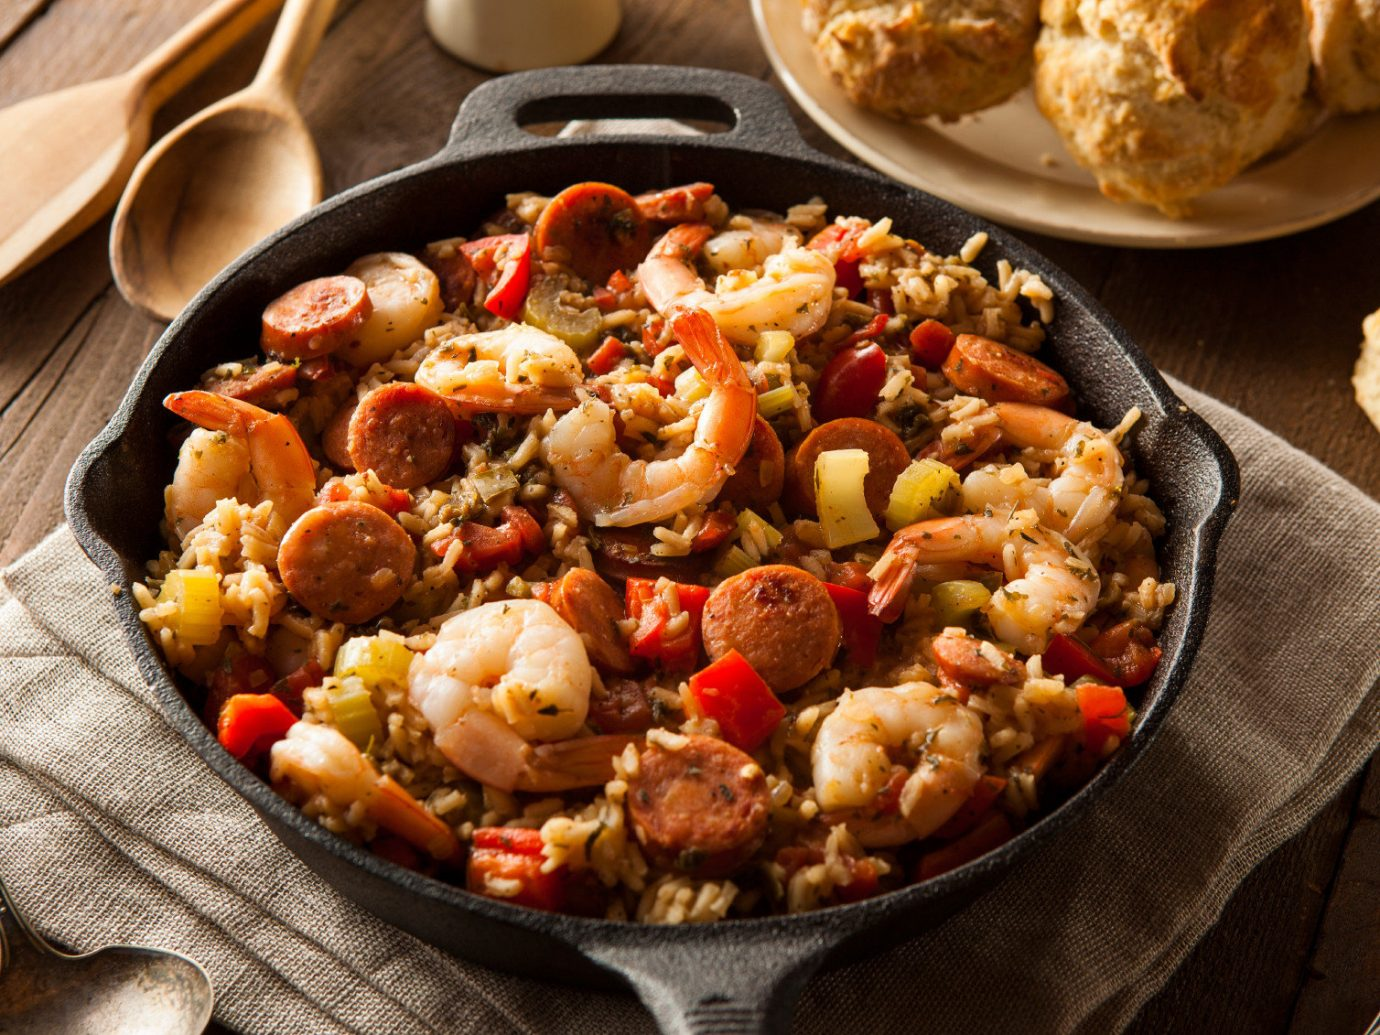 Food + Drink food dish cuisine produce meat vegetable jambalaya meal european food several